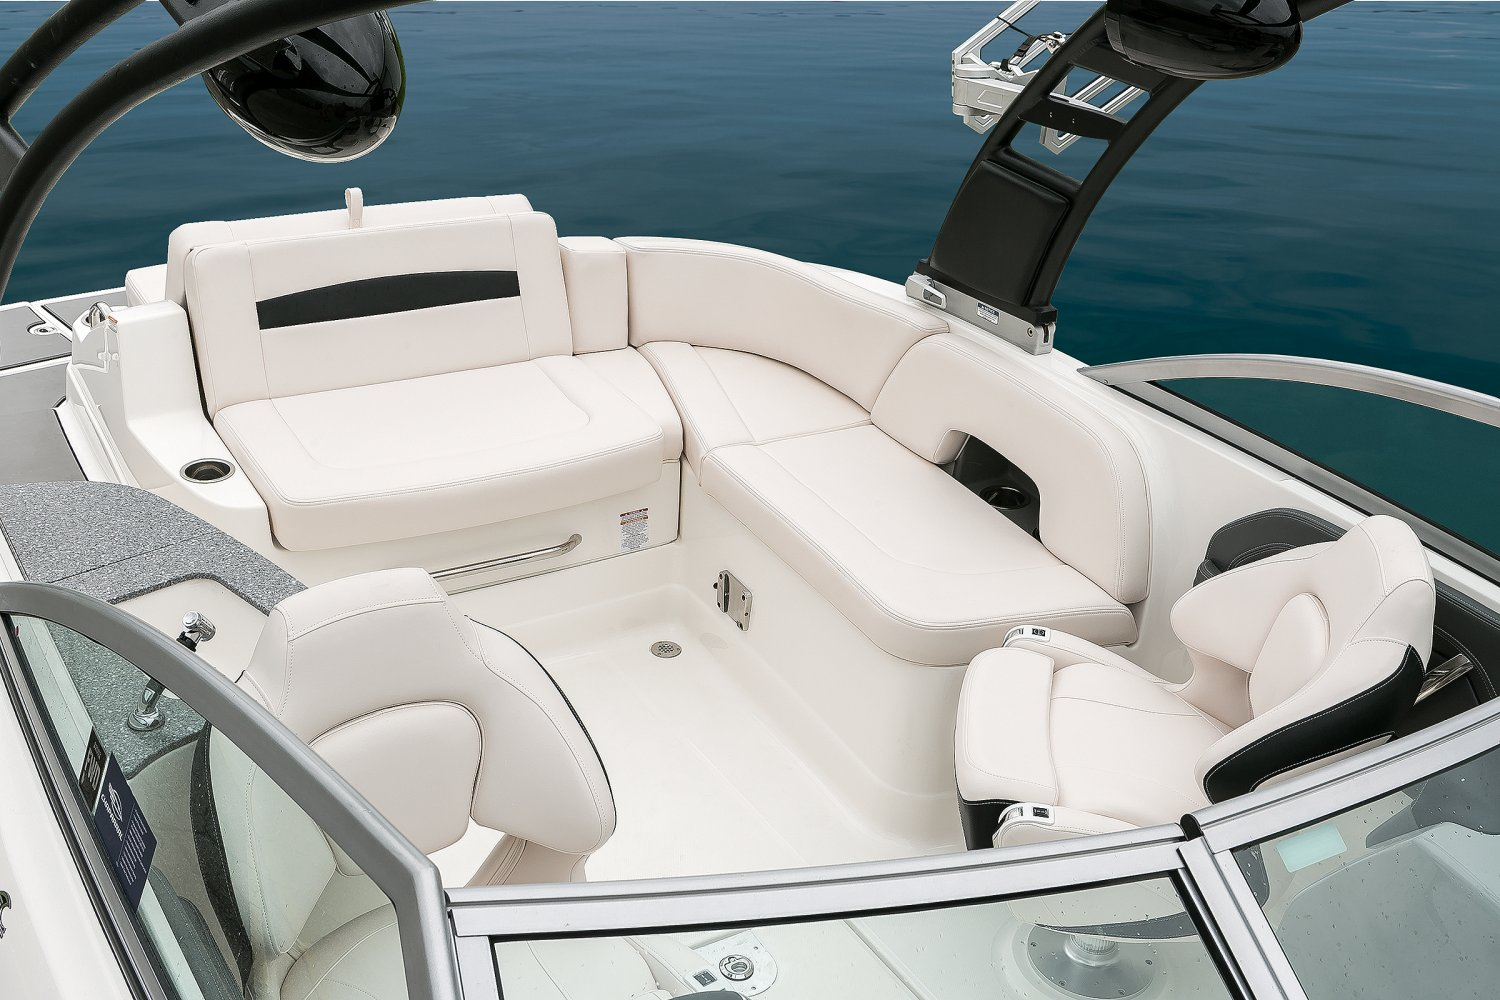 Image of a Solid Blue Hull 2018 244 Sunesta  Cockpit Seating